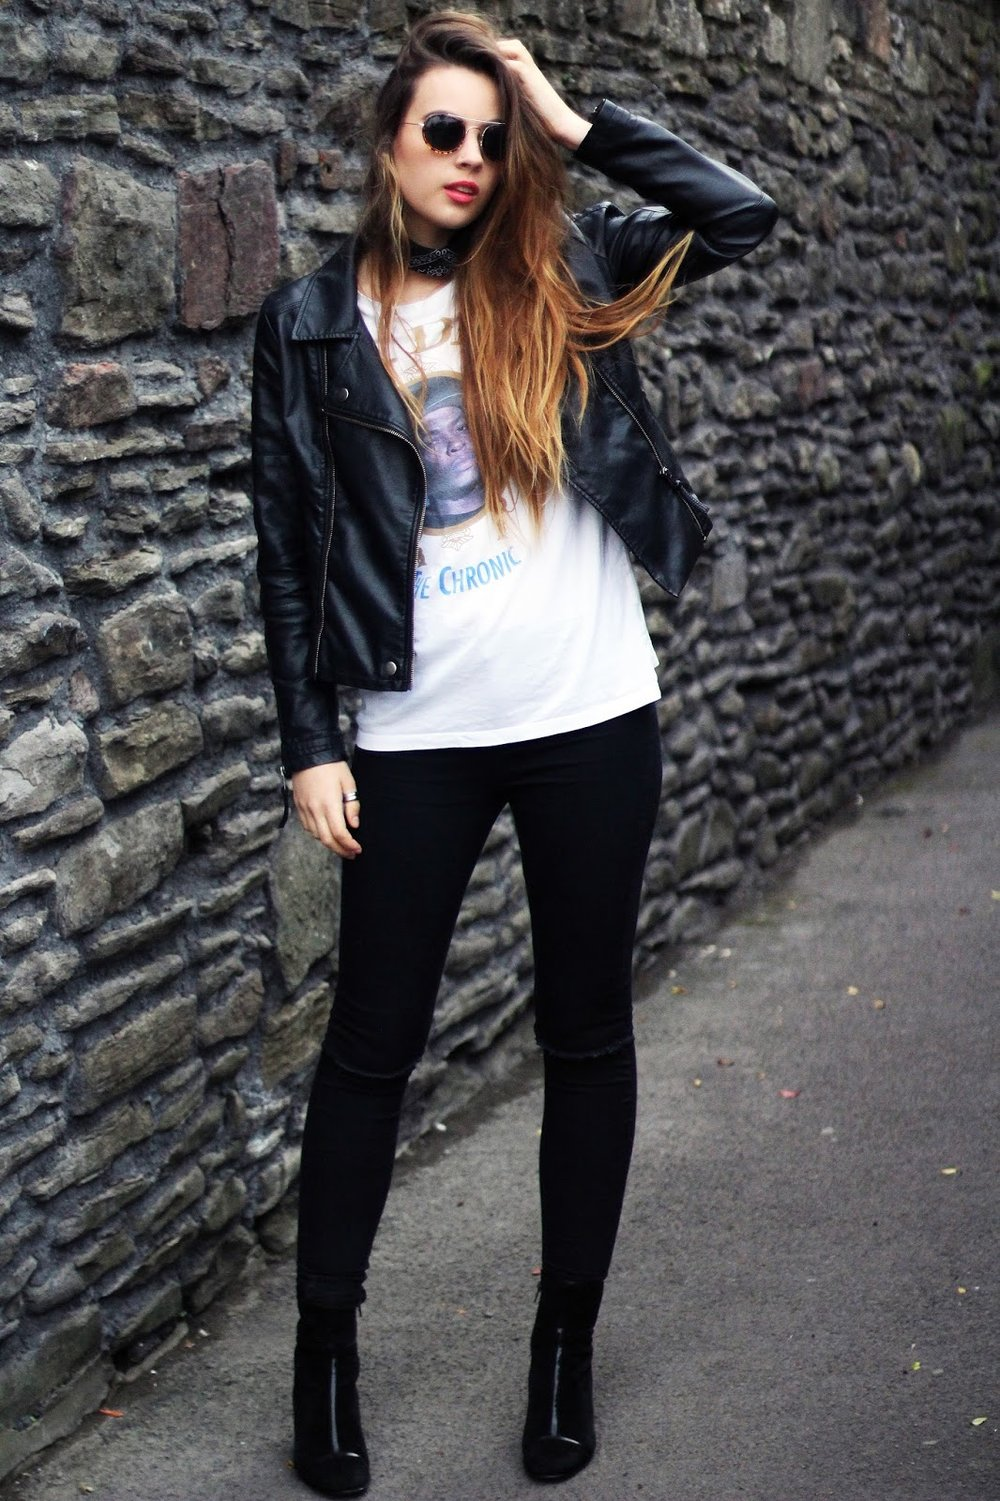 bfc4009d820f Tee - Depop (similar), jeans - Primark, leather jacket - Primark, boots -  Vintage, neck scarf - Claire's Accessories, sunglasses - Topshop.